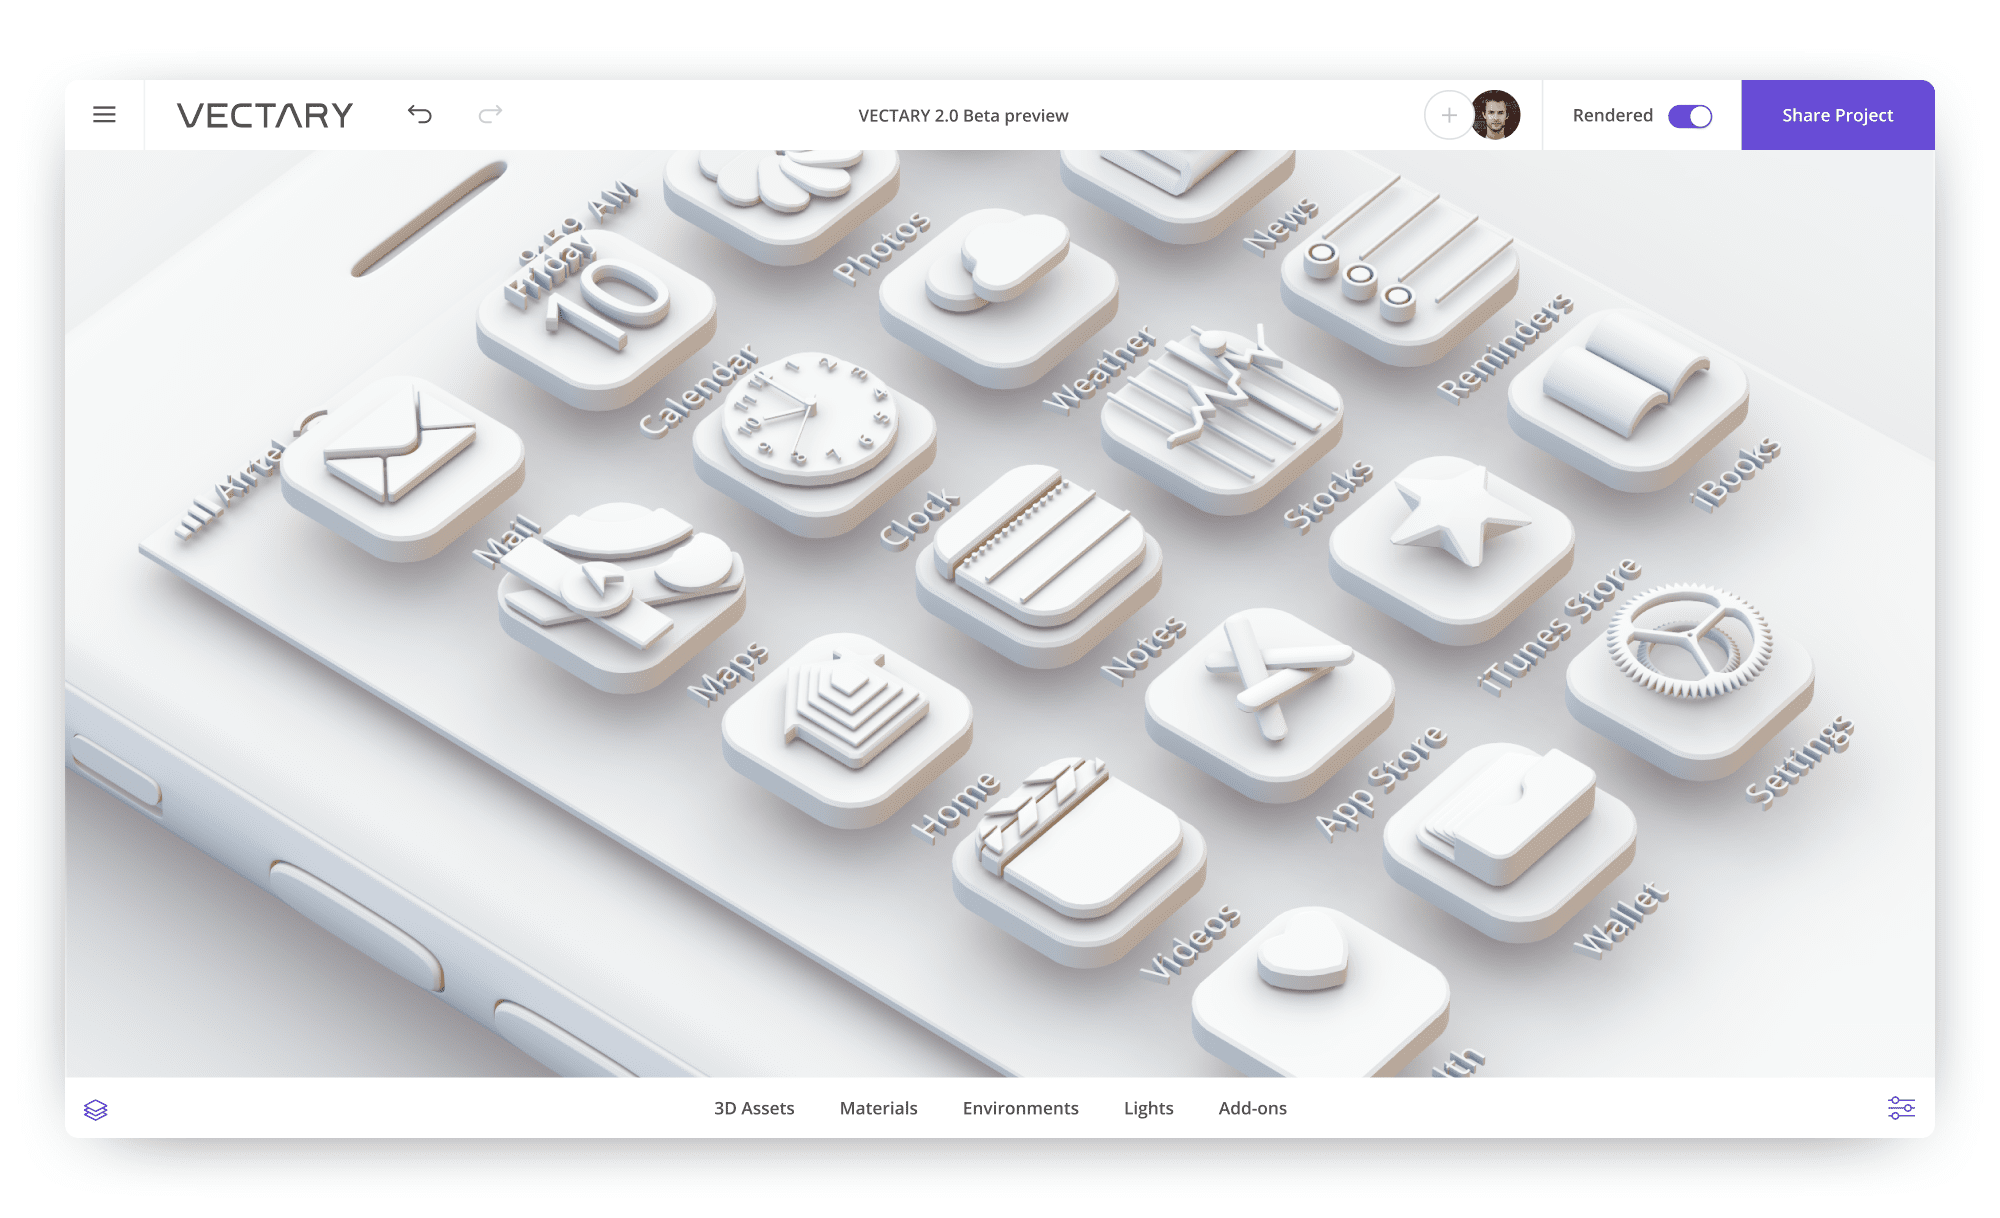 vectary-3D-icons-design-ios-app-monochrome-white-iphone